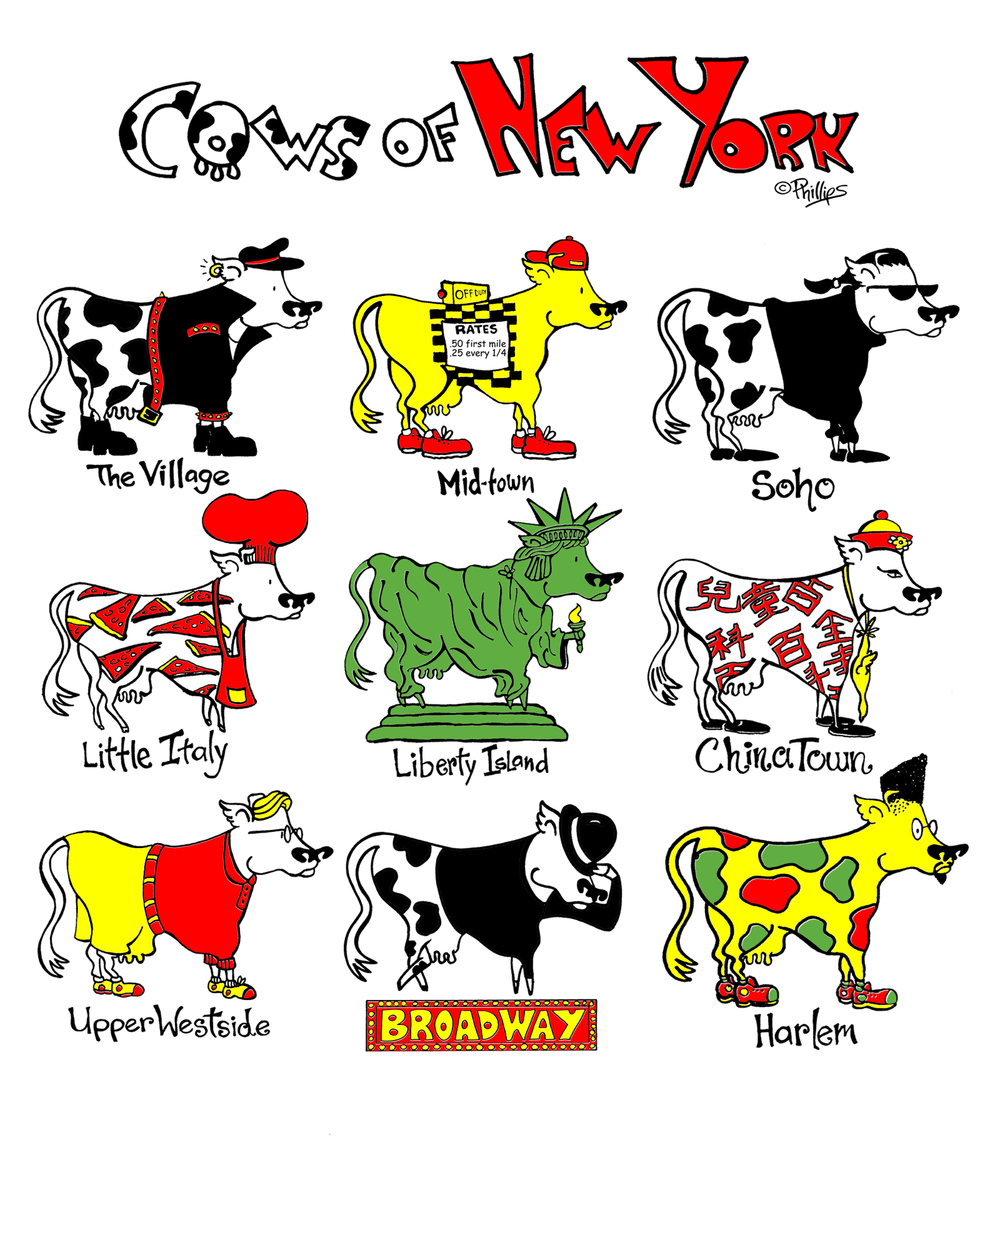 revisedCows NY2001 copy.jpg